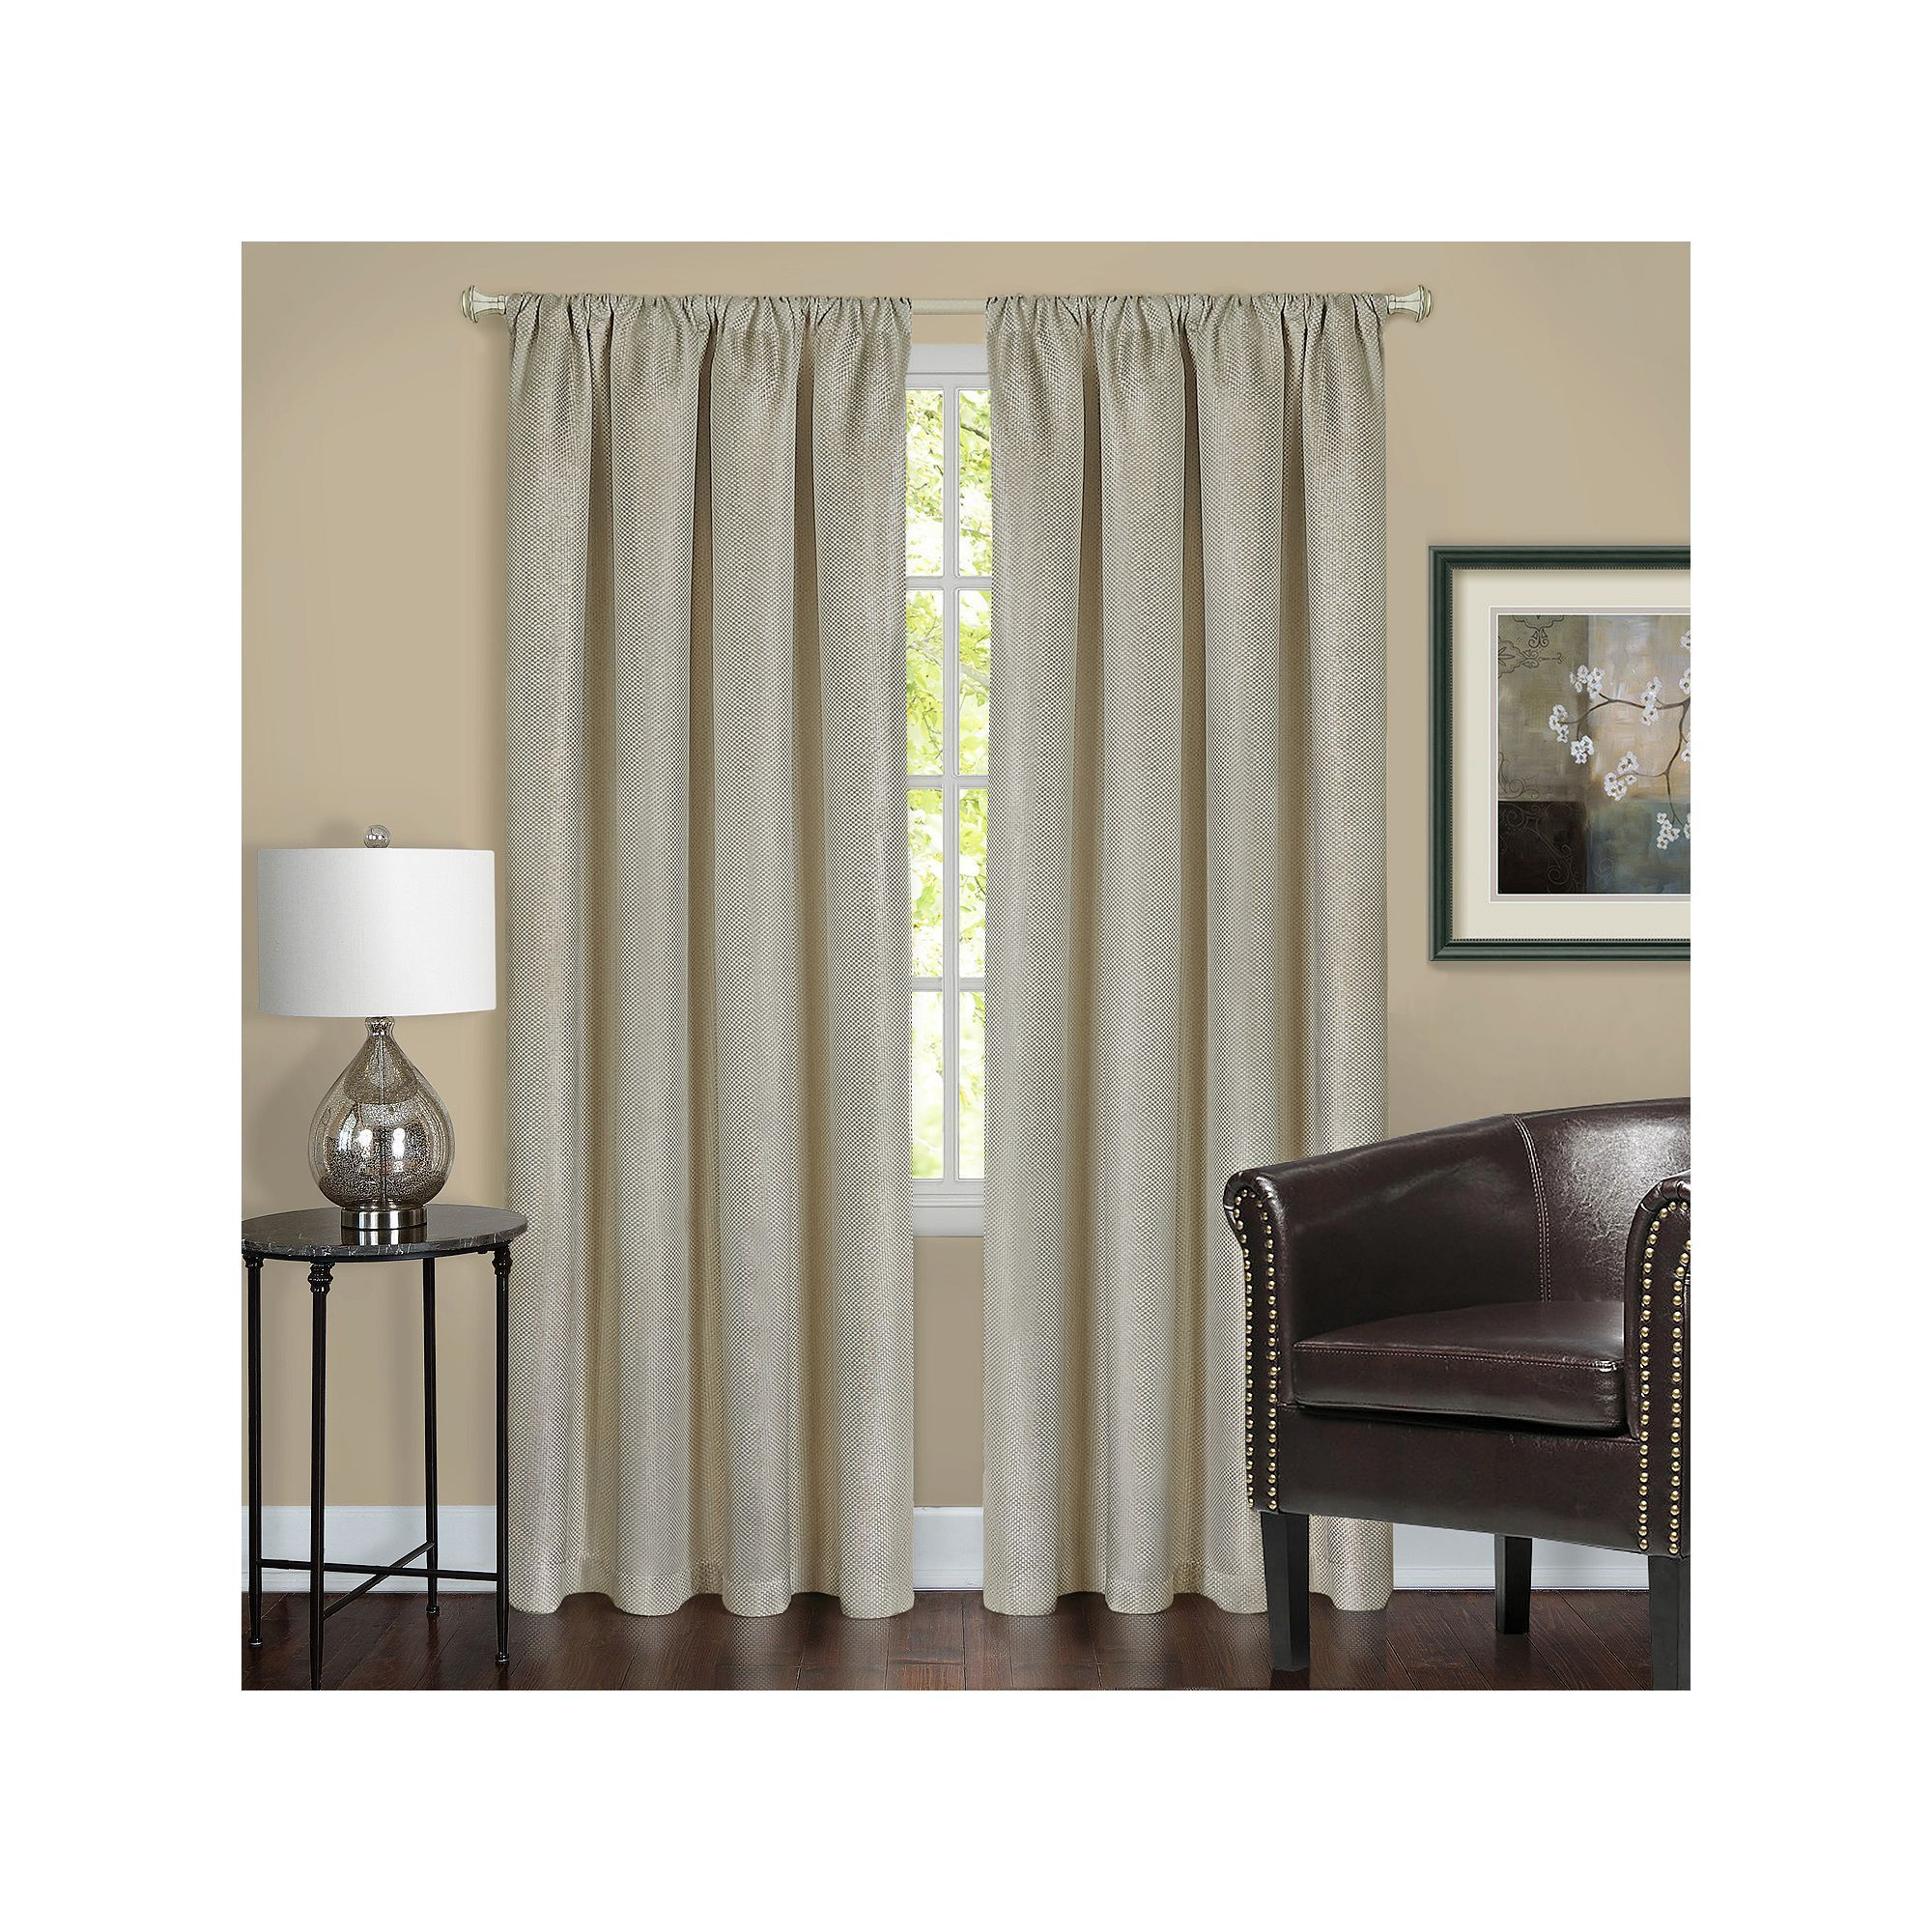 Achim Harmony Blackout Curtain, Beiggreen (Beigkhaki) #Bedroomcurtainscortinasmodernas